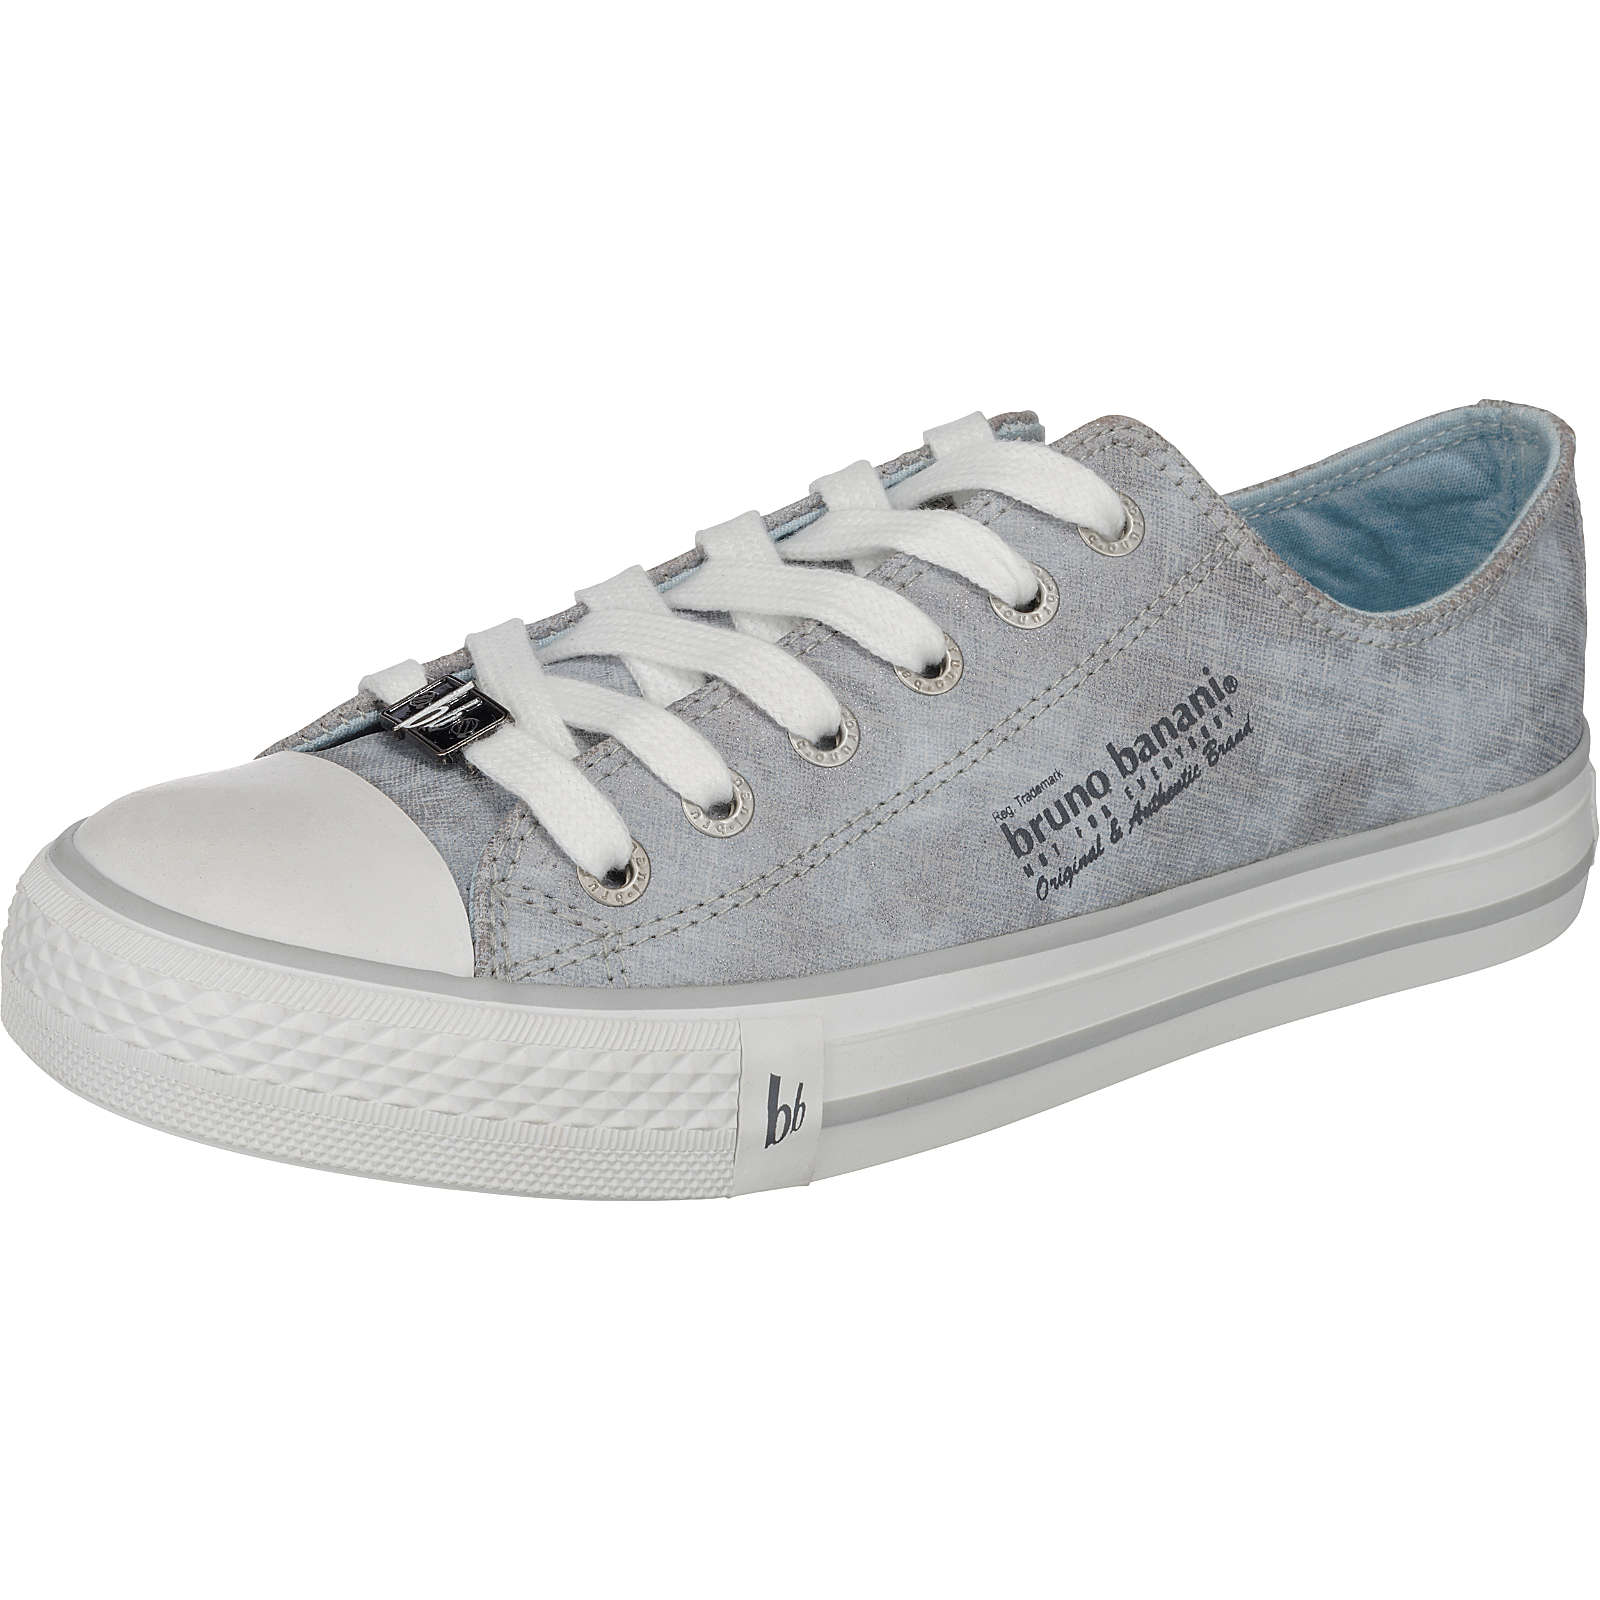 bruno banani Sneakers Low blau-kombi Damen Gr. 36